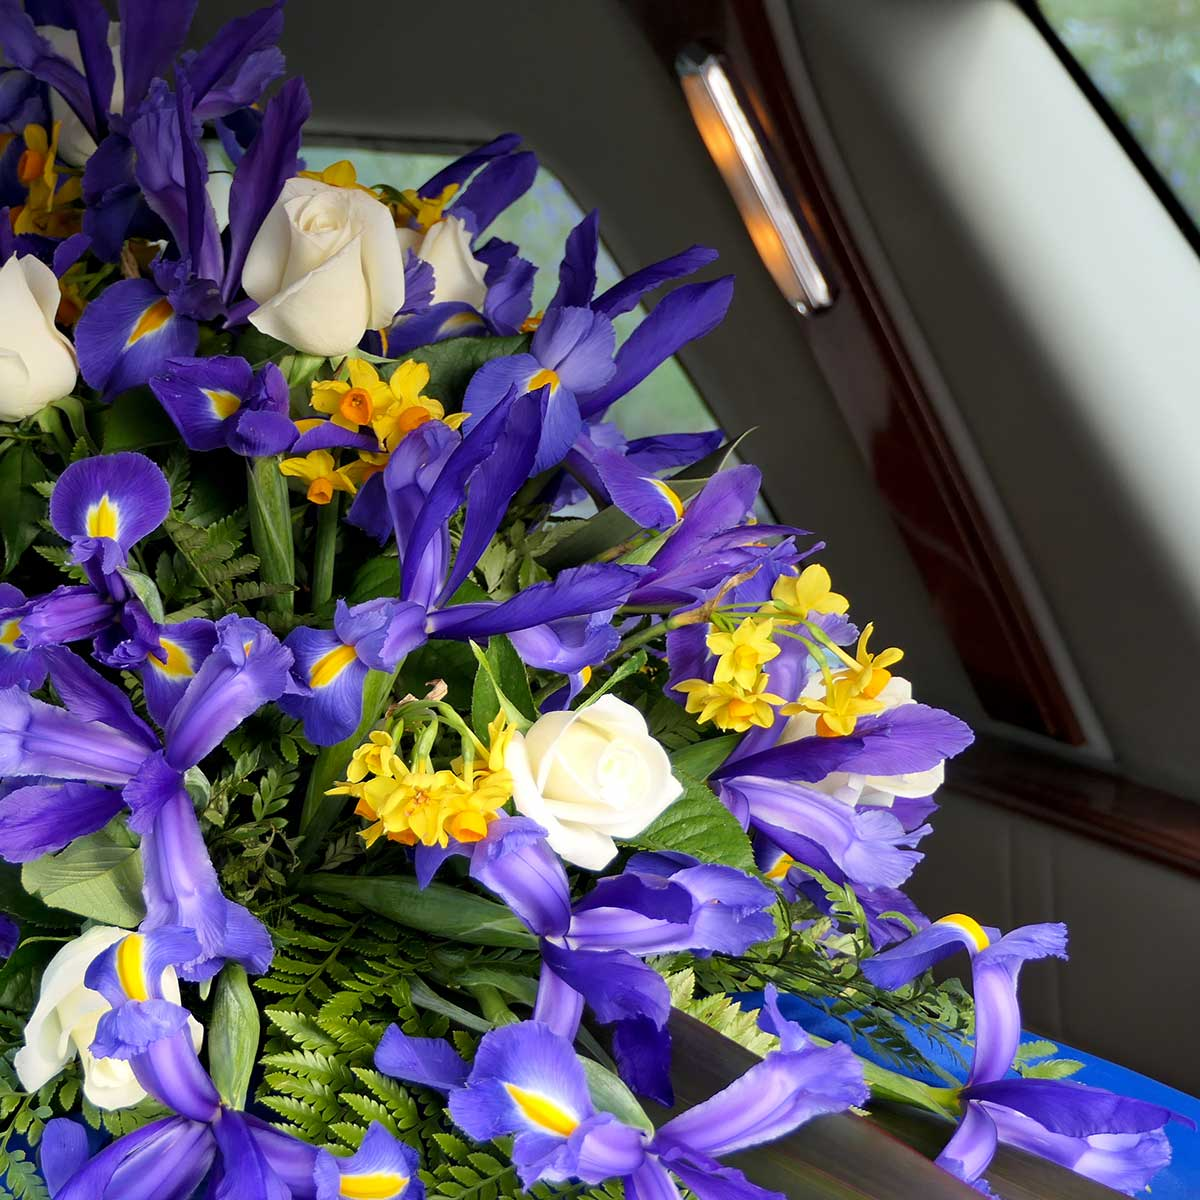 Burial flowers funeral services options